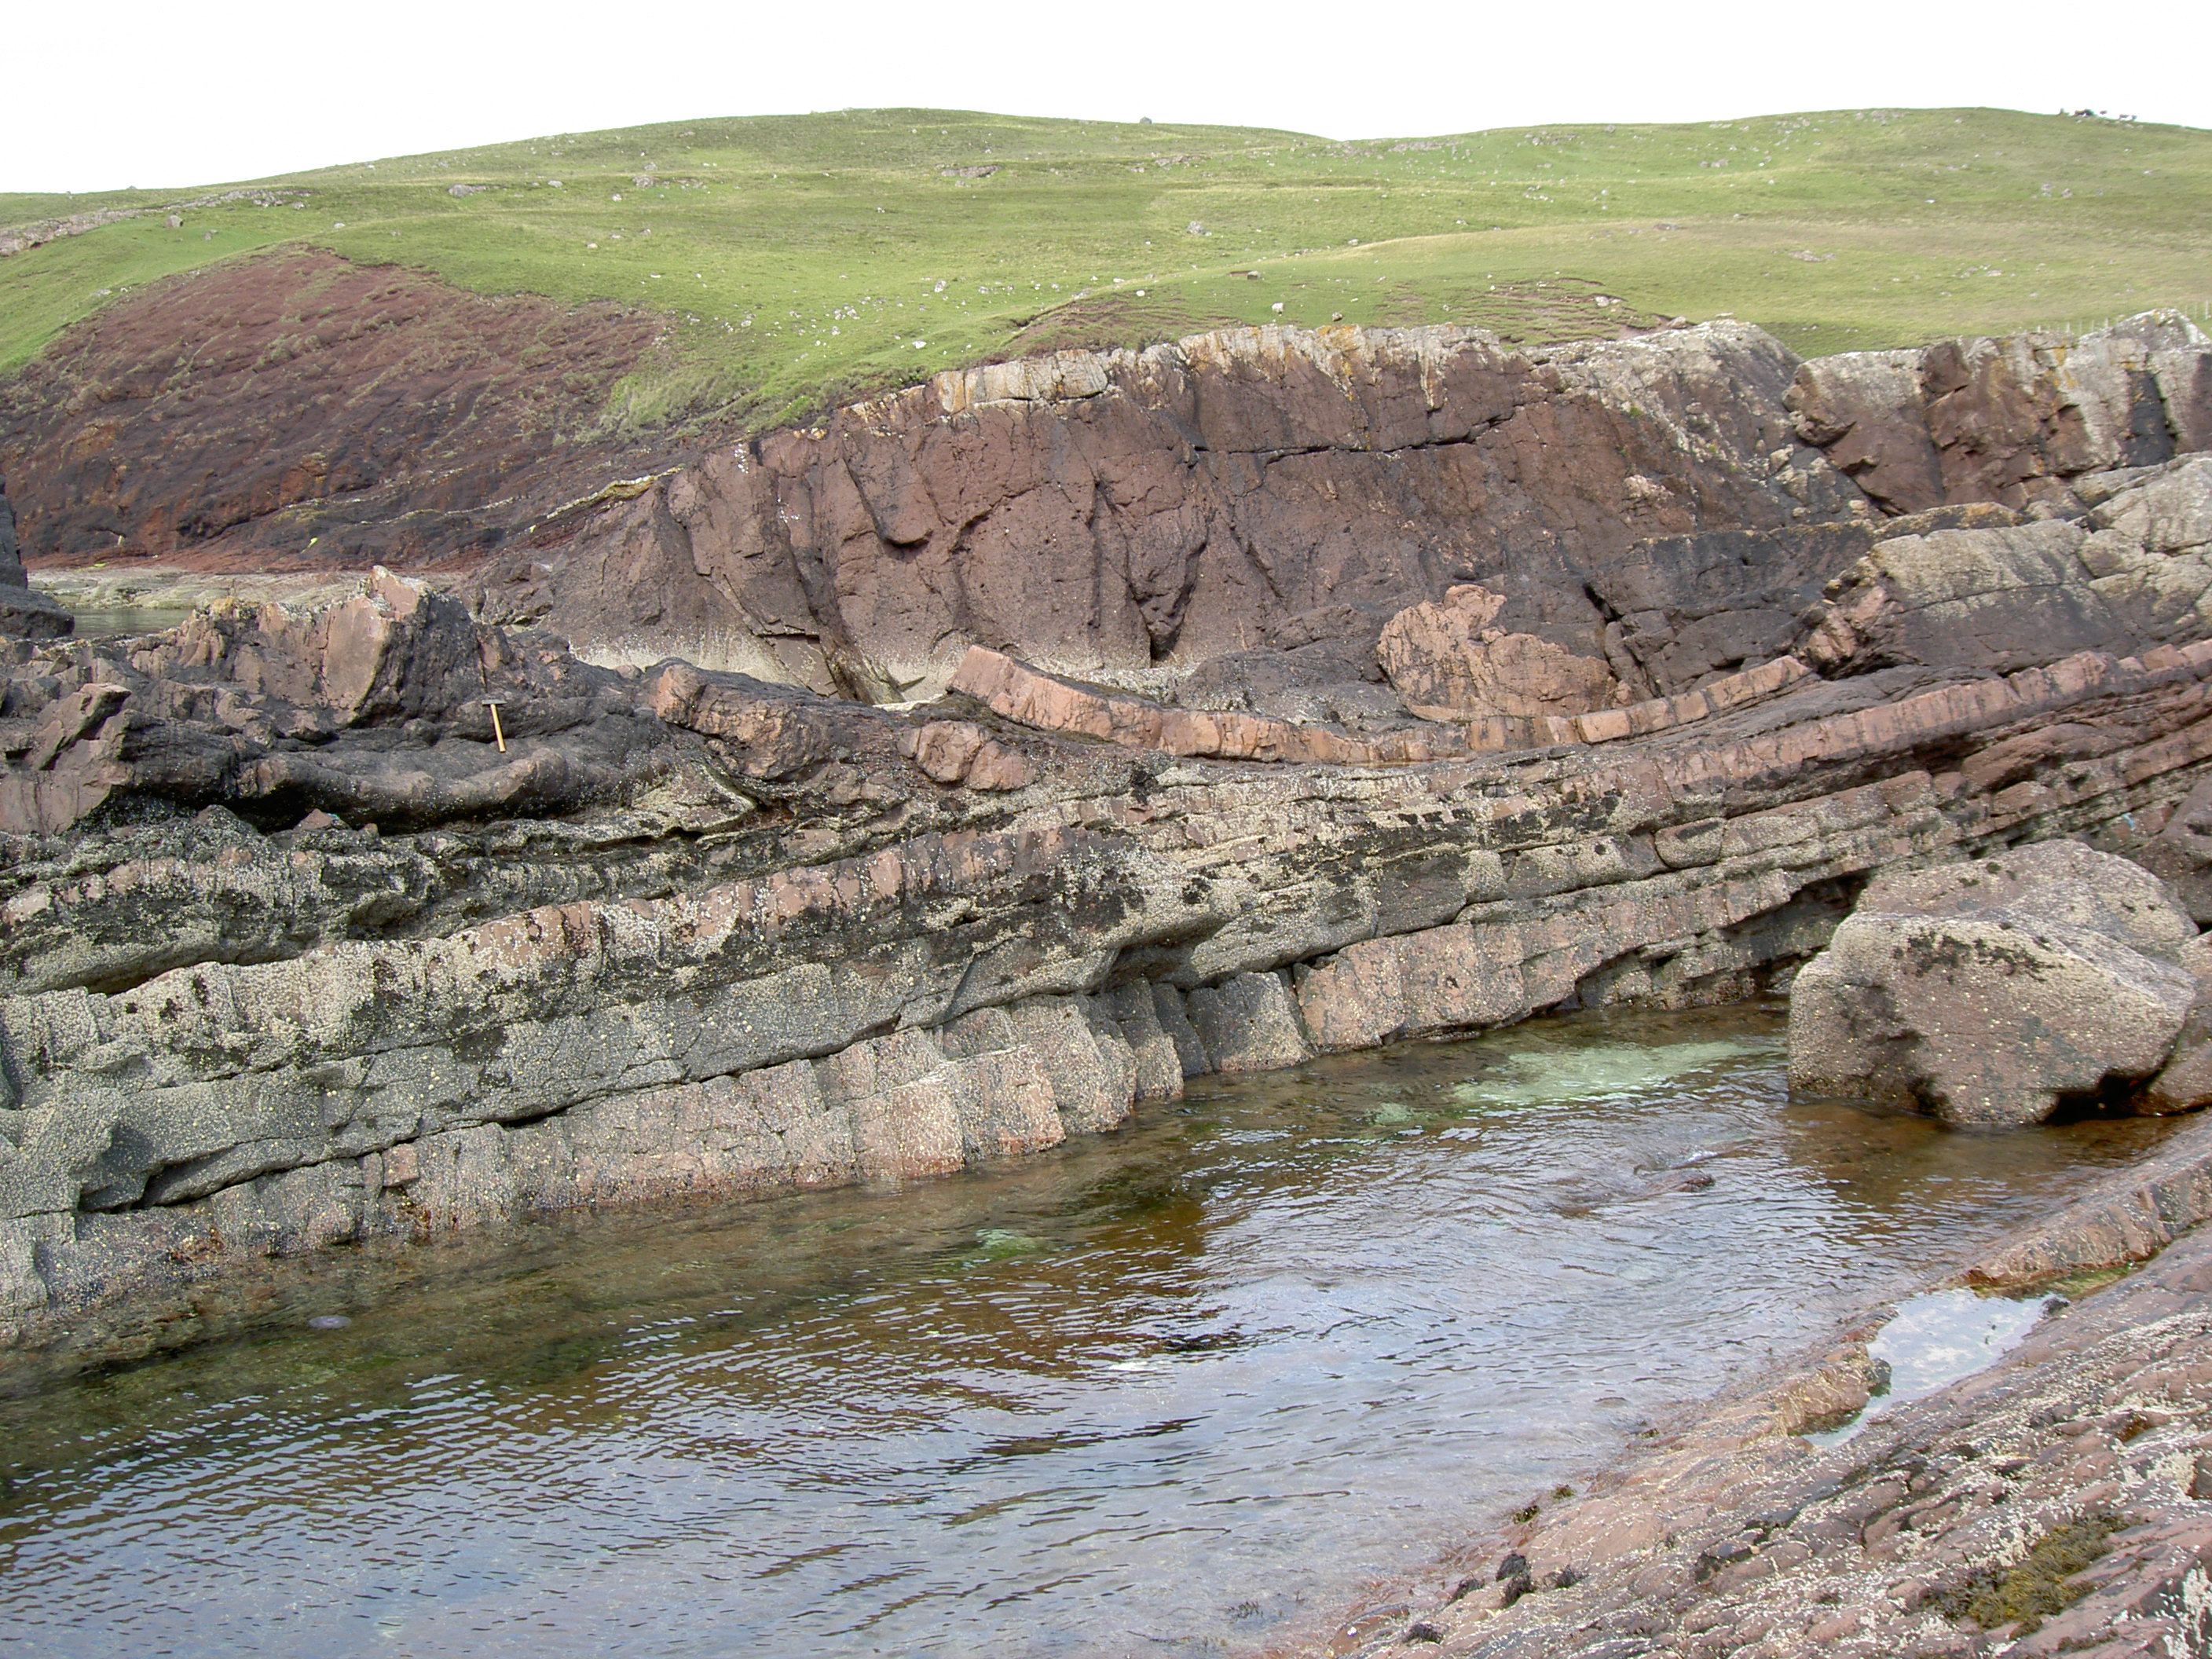 """A field photo take at Stoer showing the laminar beds of sandstone in the bottom of the picture. In the middle is the impact deposit (12m thick at this location) that contains """"rafts"""" of deformed pink sandstone."""